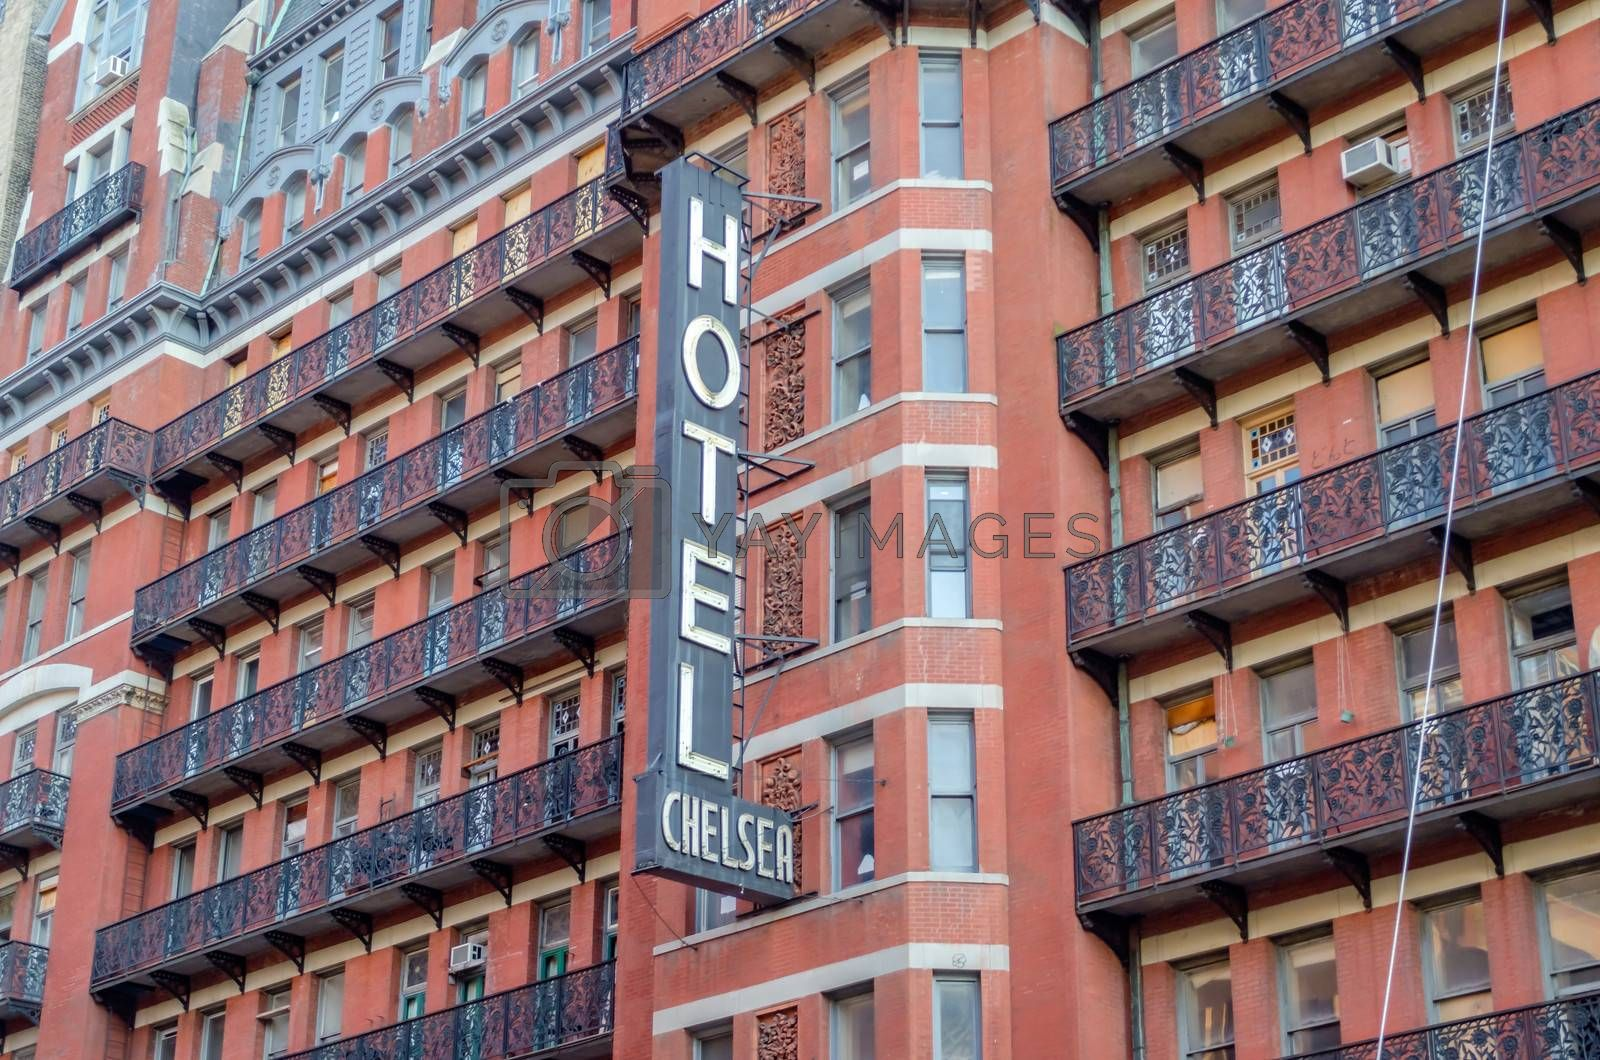 NEW YORK - CIRCA MAY 2013: The Hotel Chelsea, New York, circa May 2013. The Hotel is a historic landmark in New York, known for the notability of its residents over the years